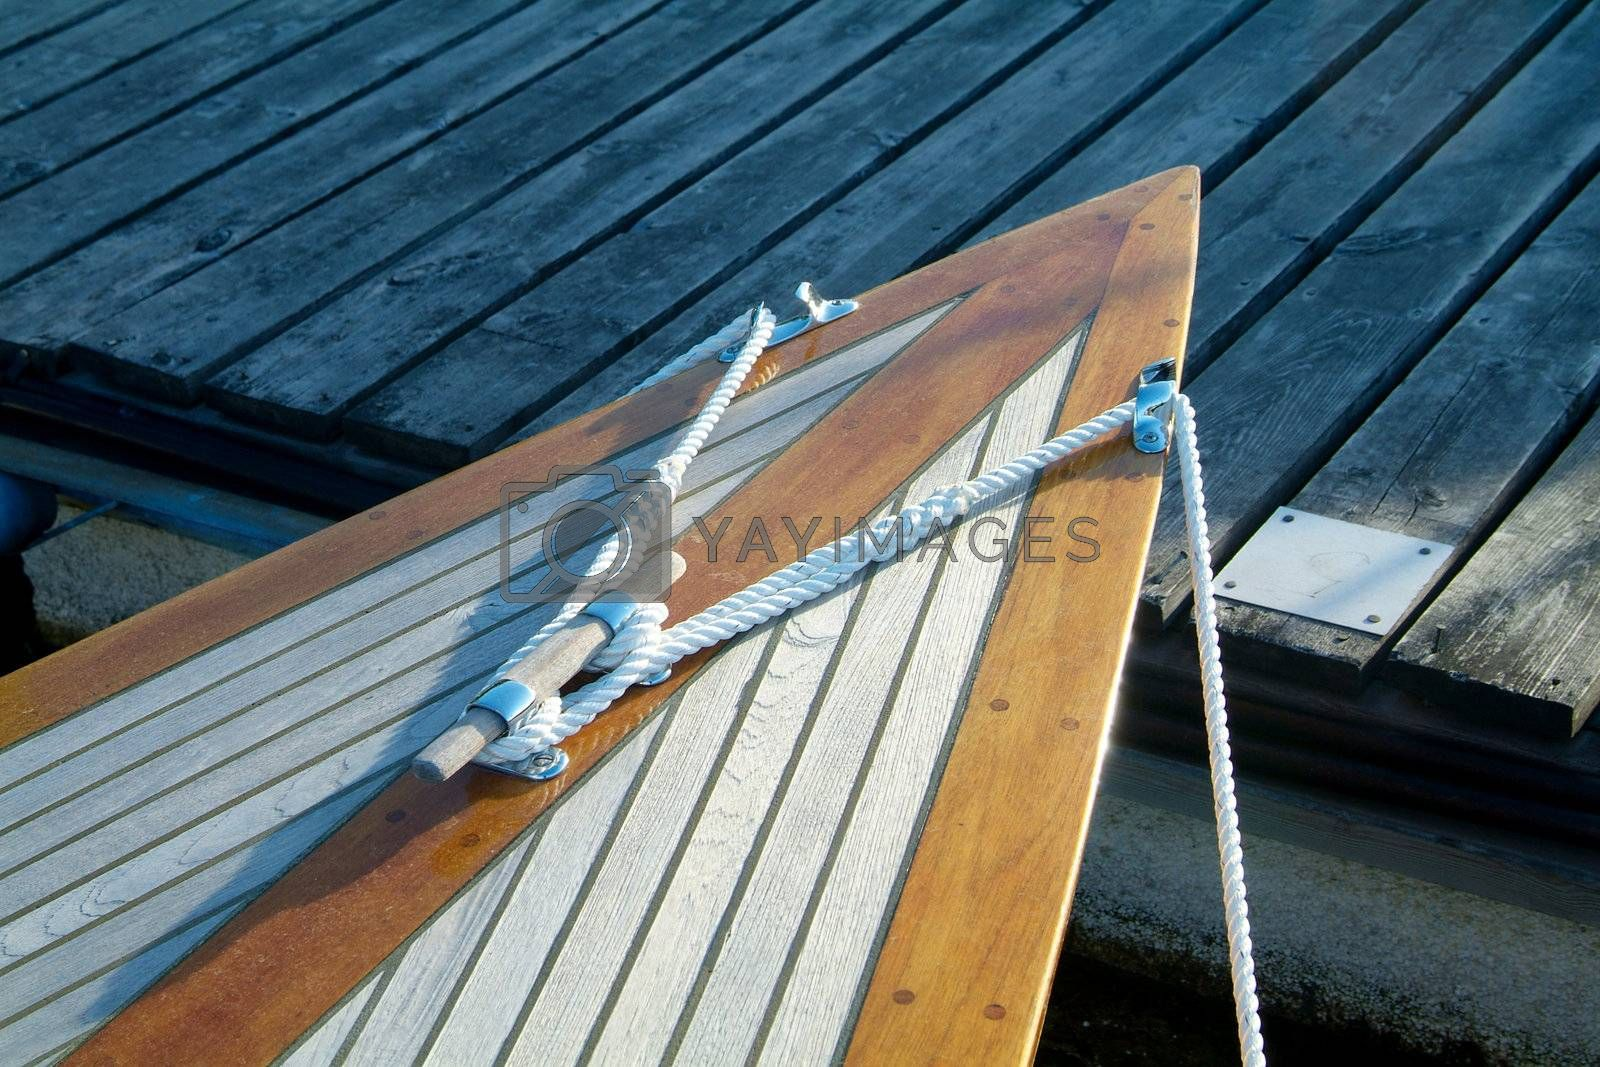 Bow of classic sailboat by epixx